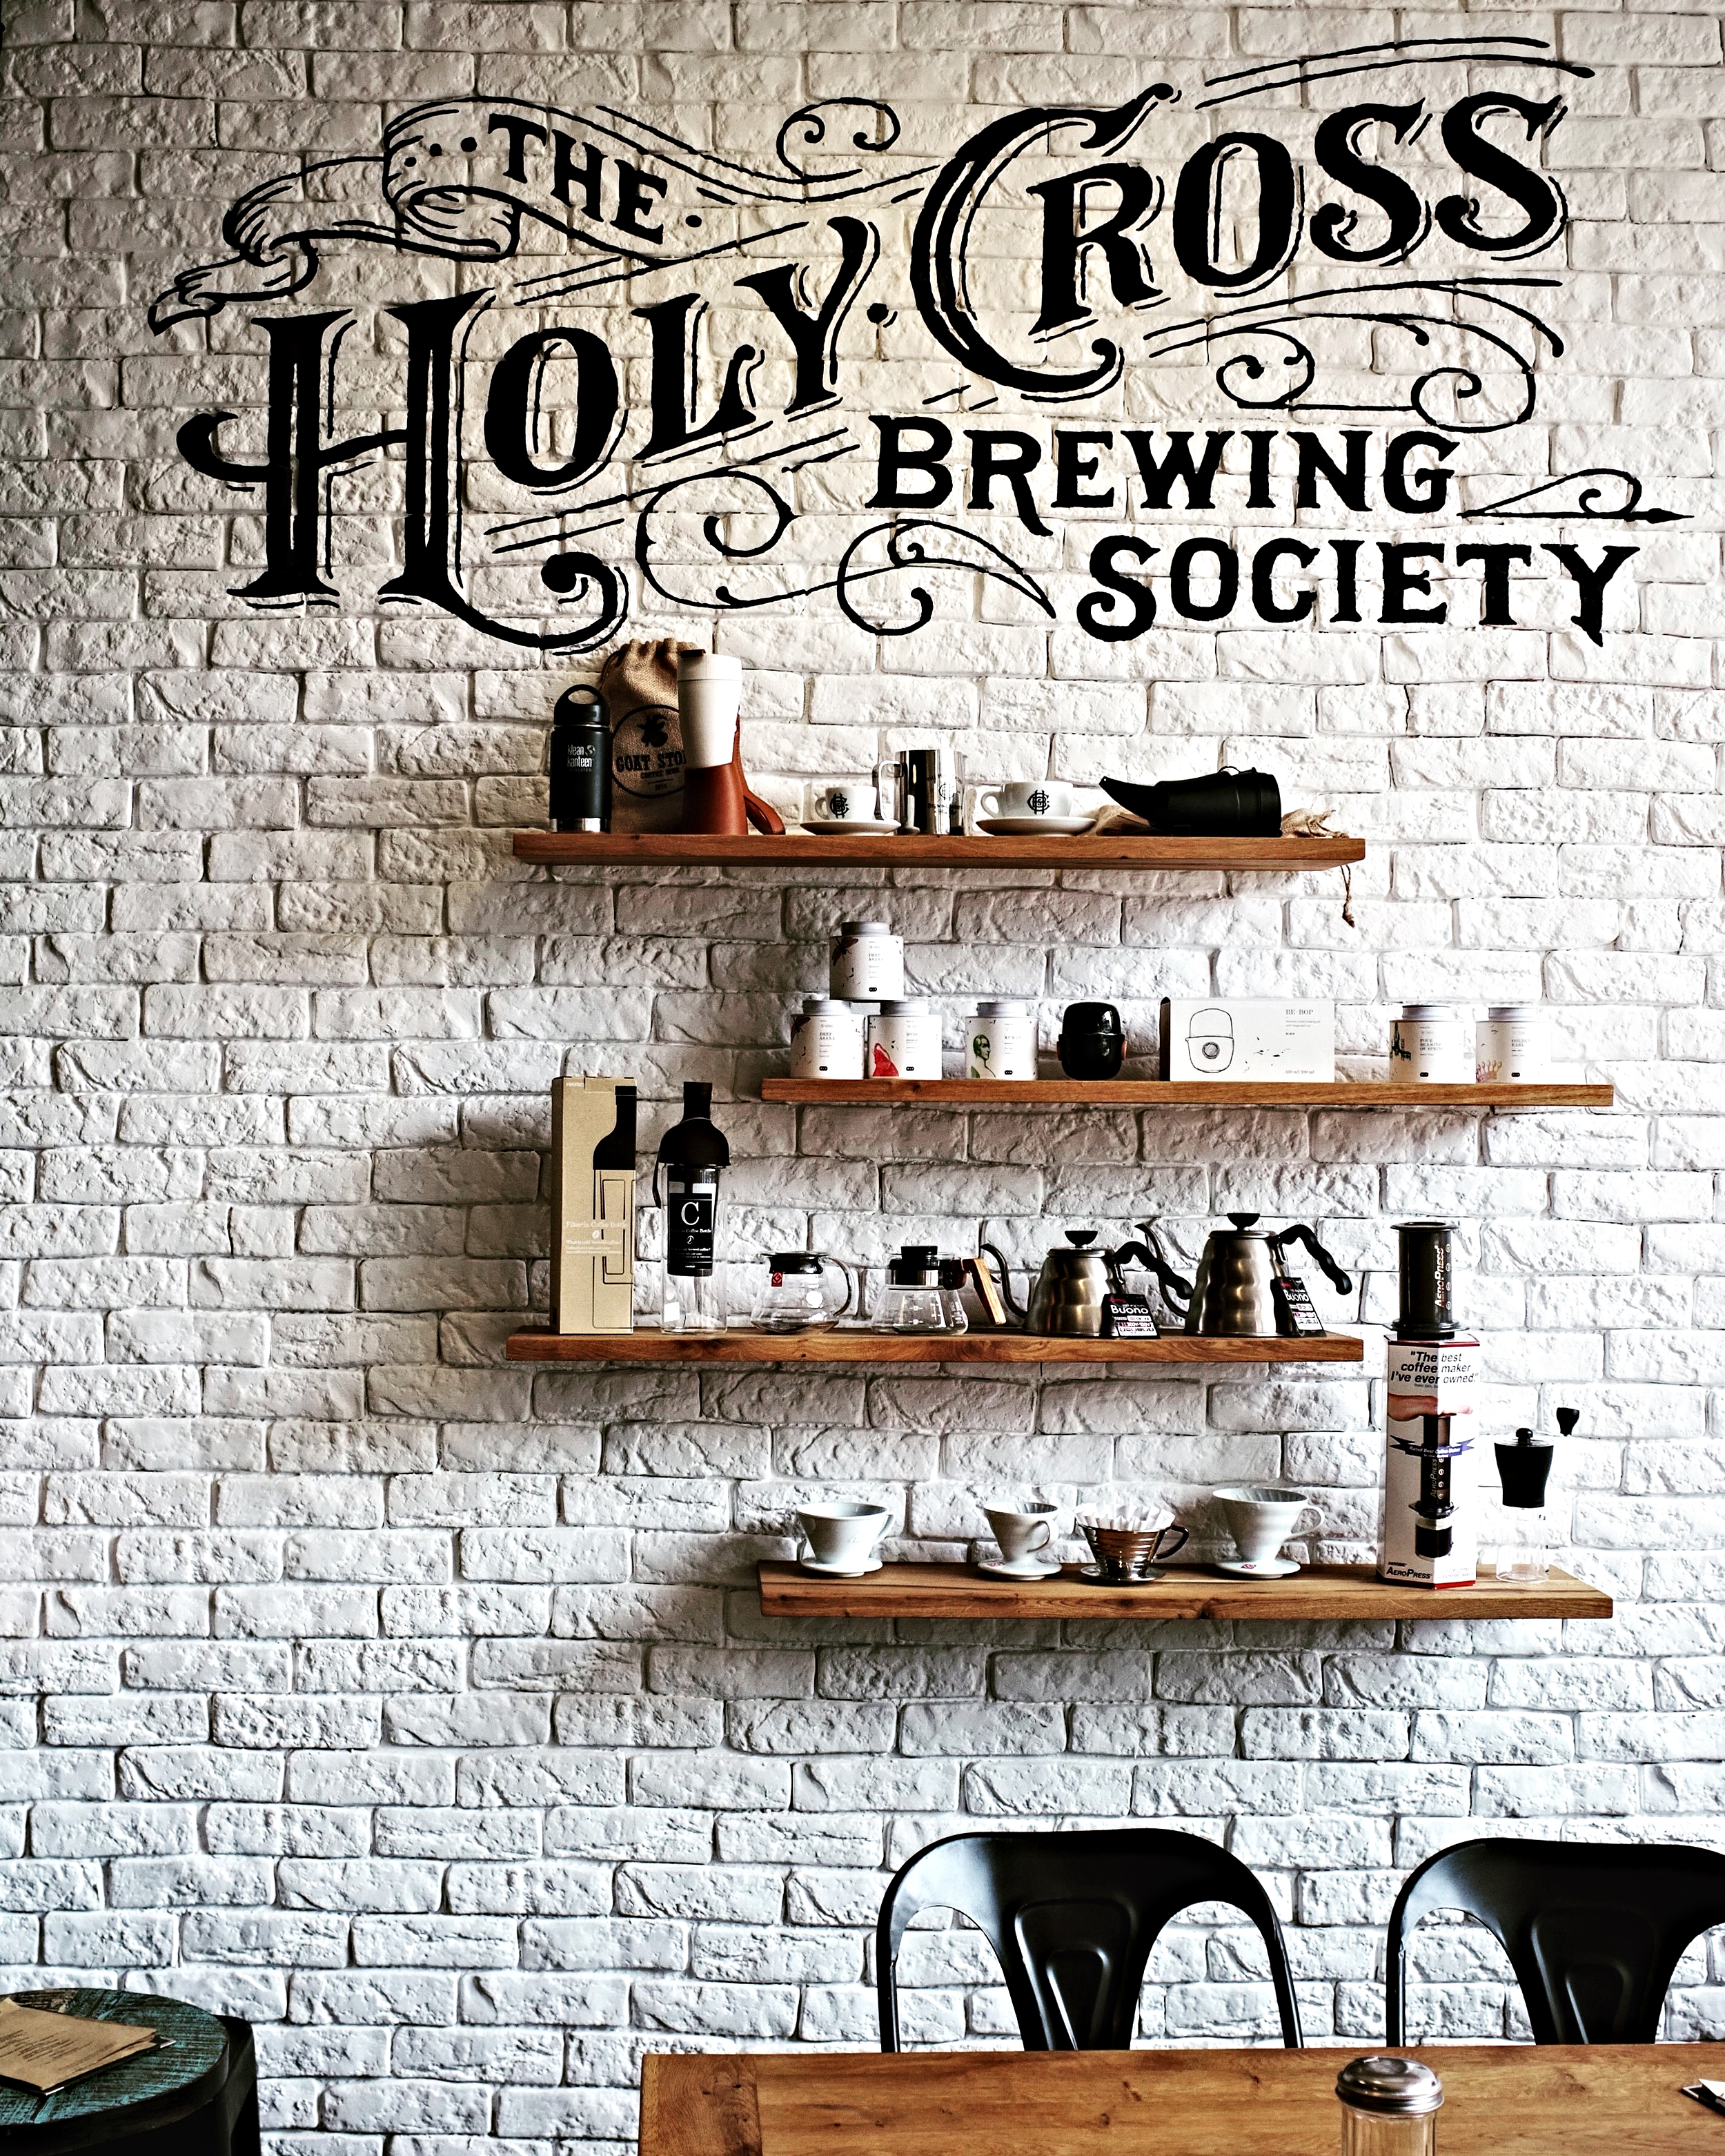 holy cross brewing company